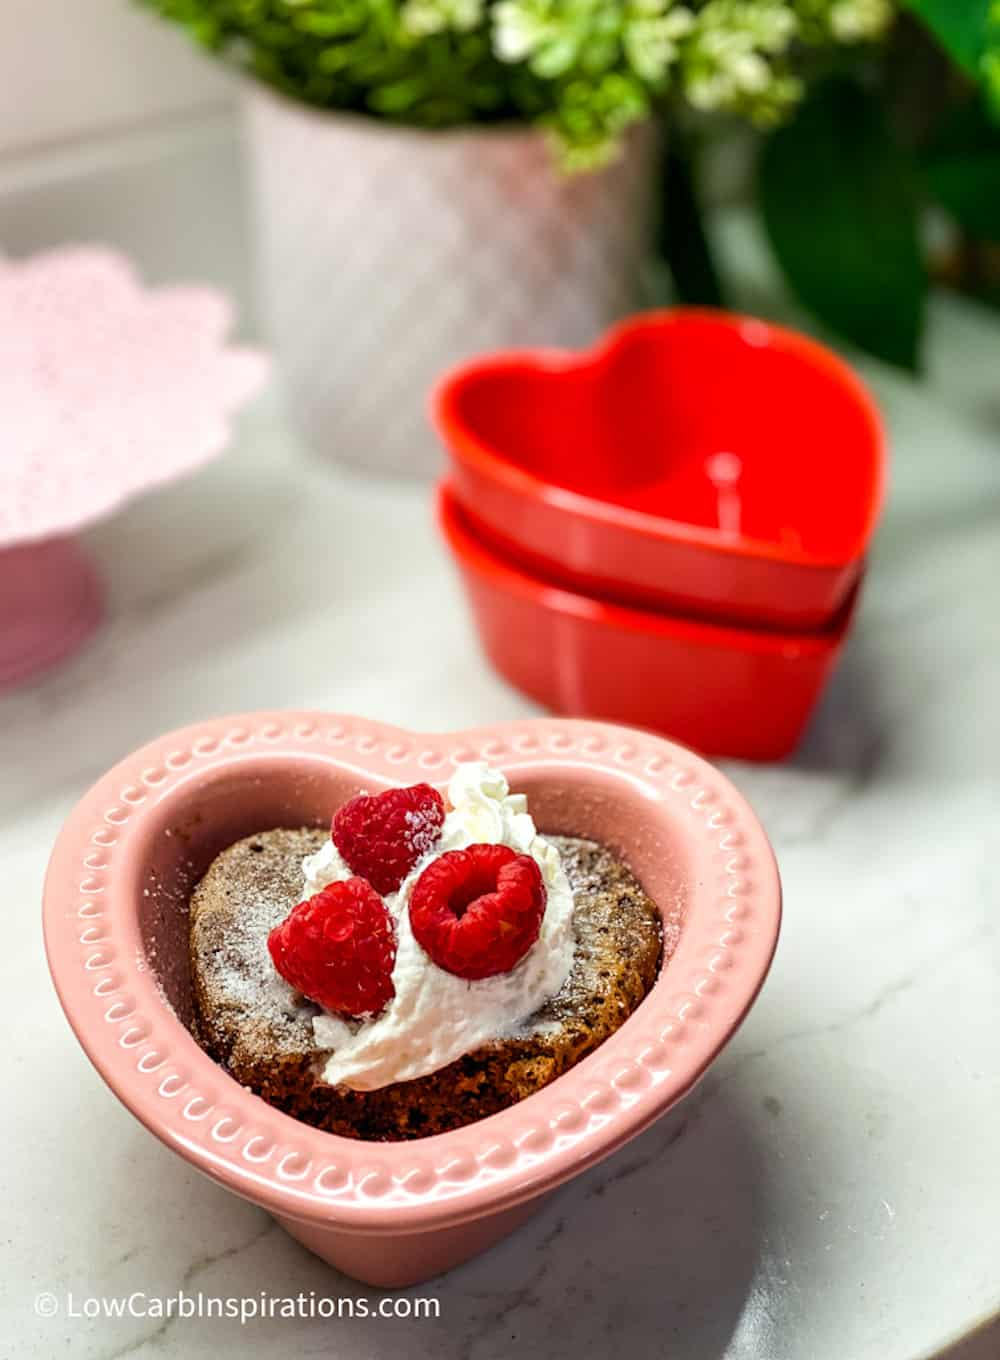 Chocolate cake in a pink heart shaped pan